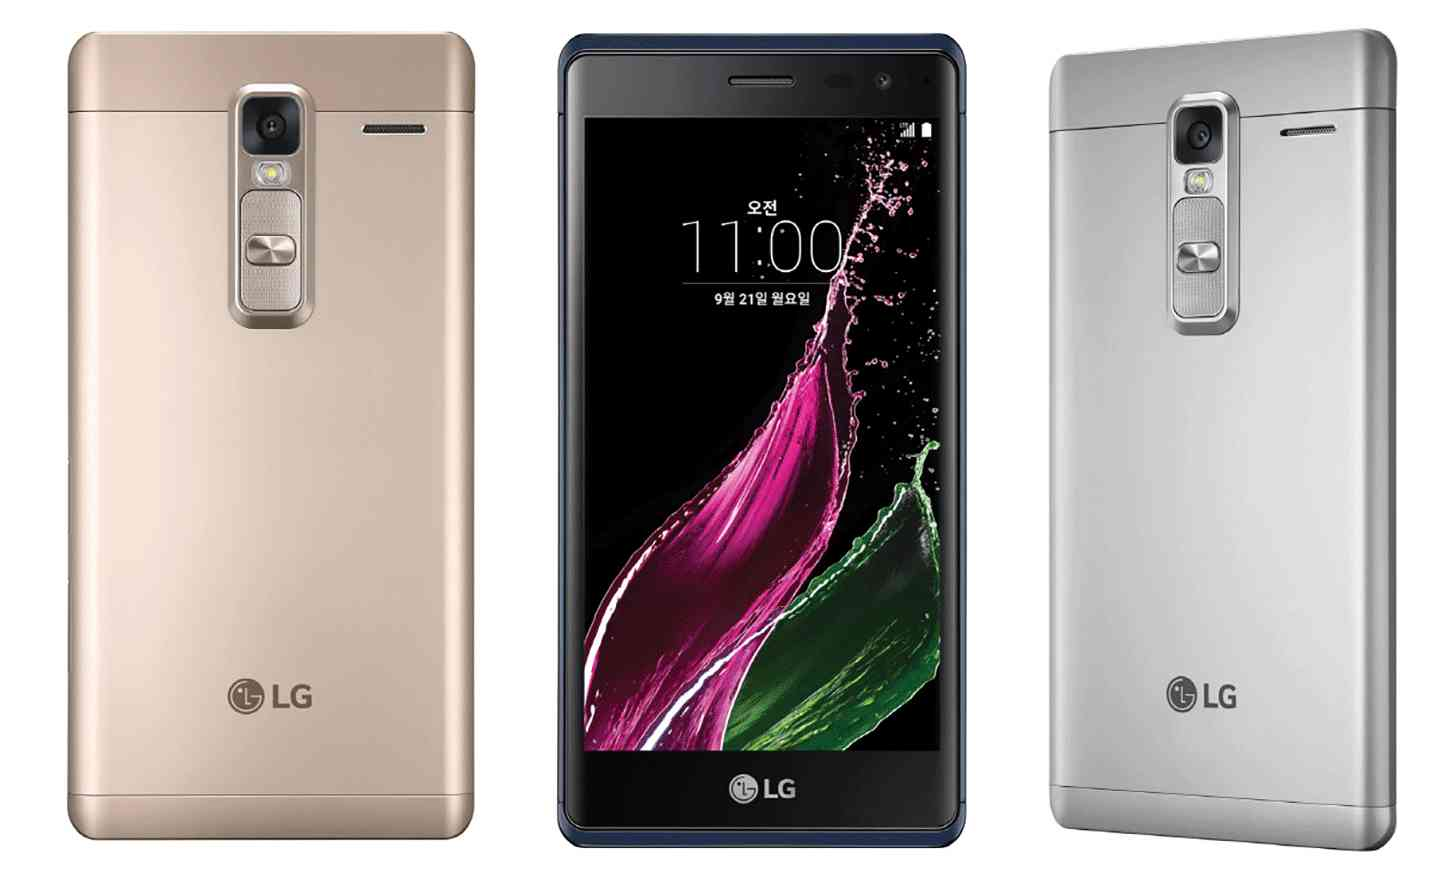 LG Class is a metal-clad Android phone with a 5-inch ...